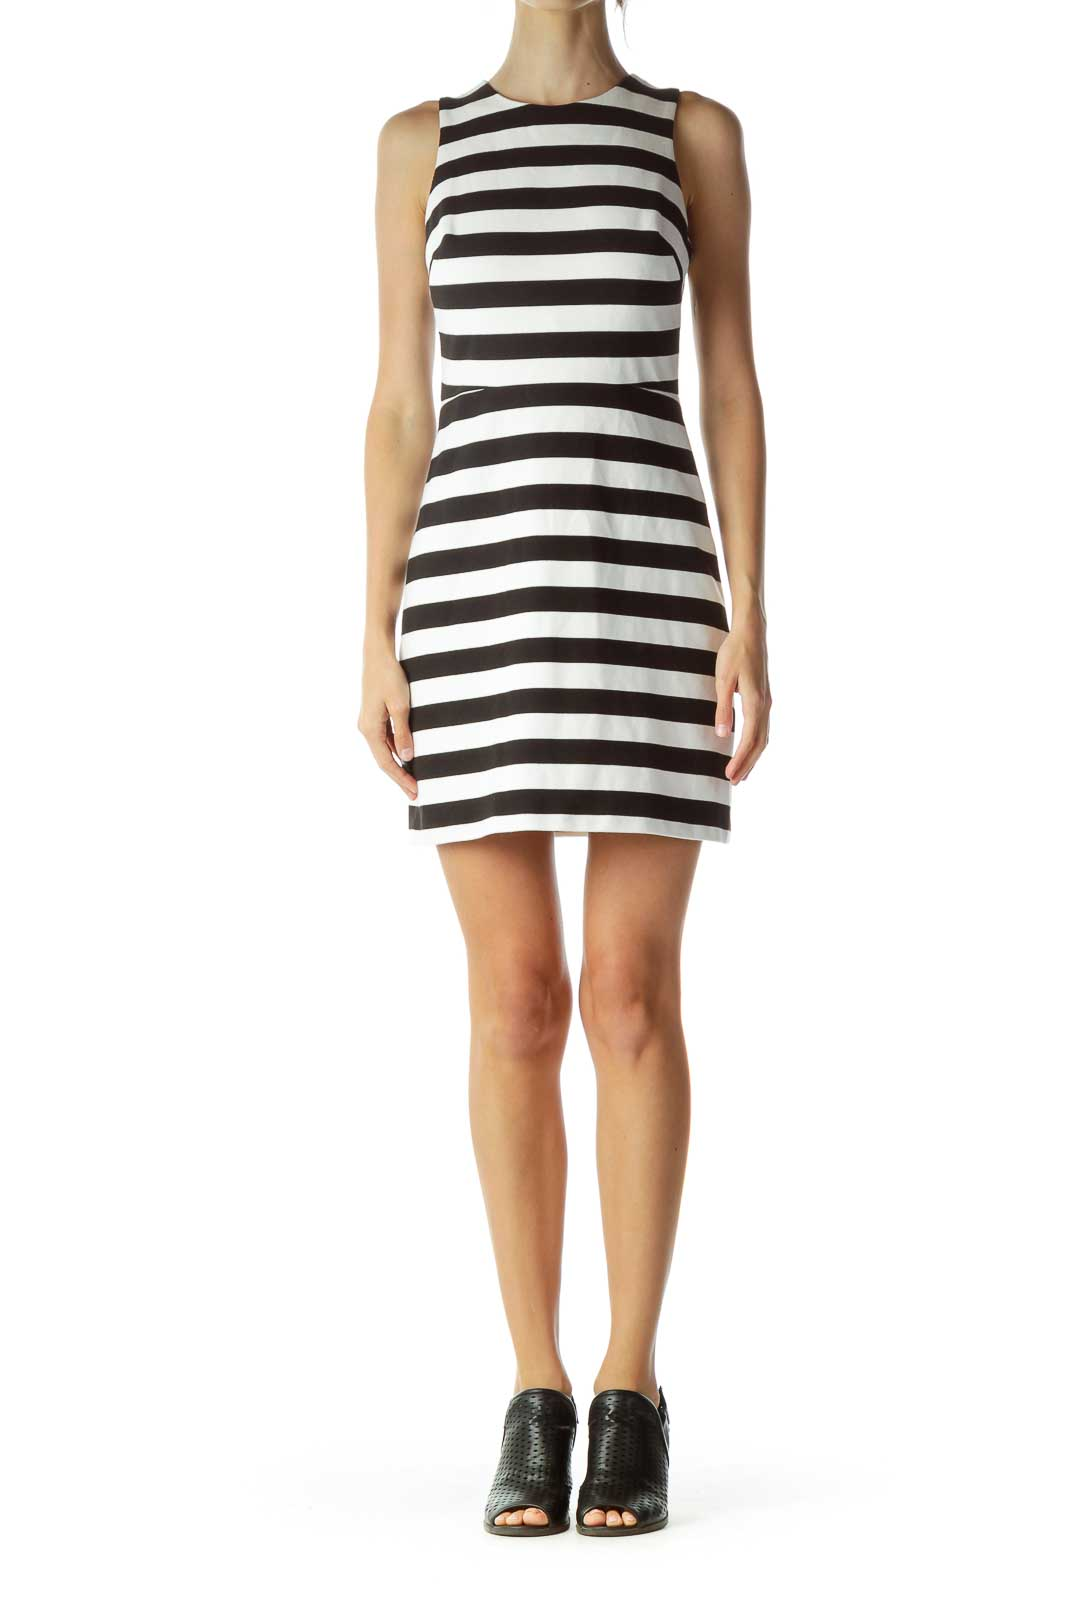 White Black Striped Cut-Out Cocktail Dress